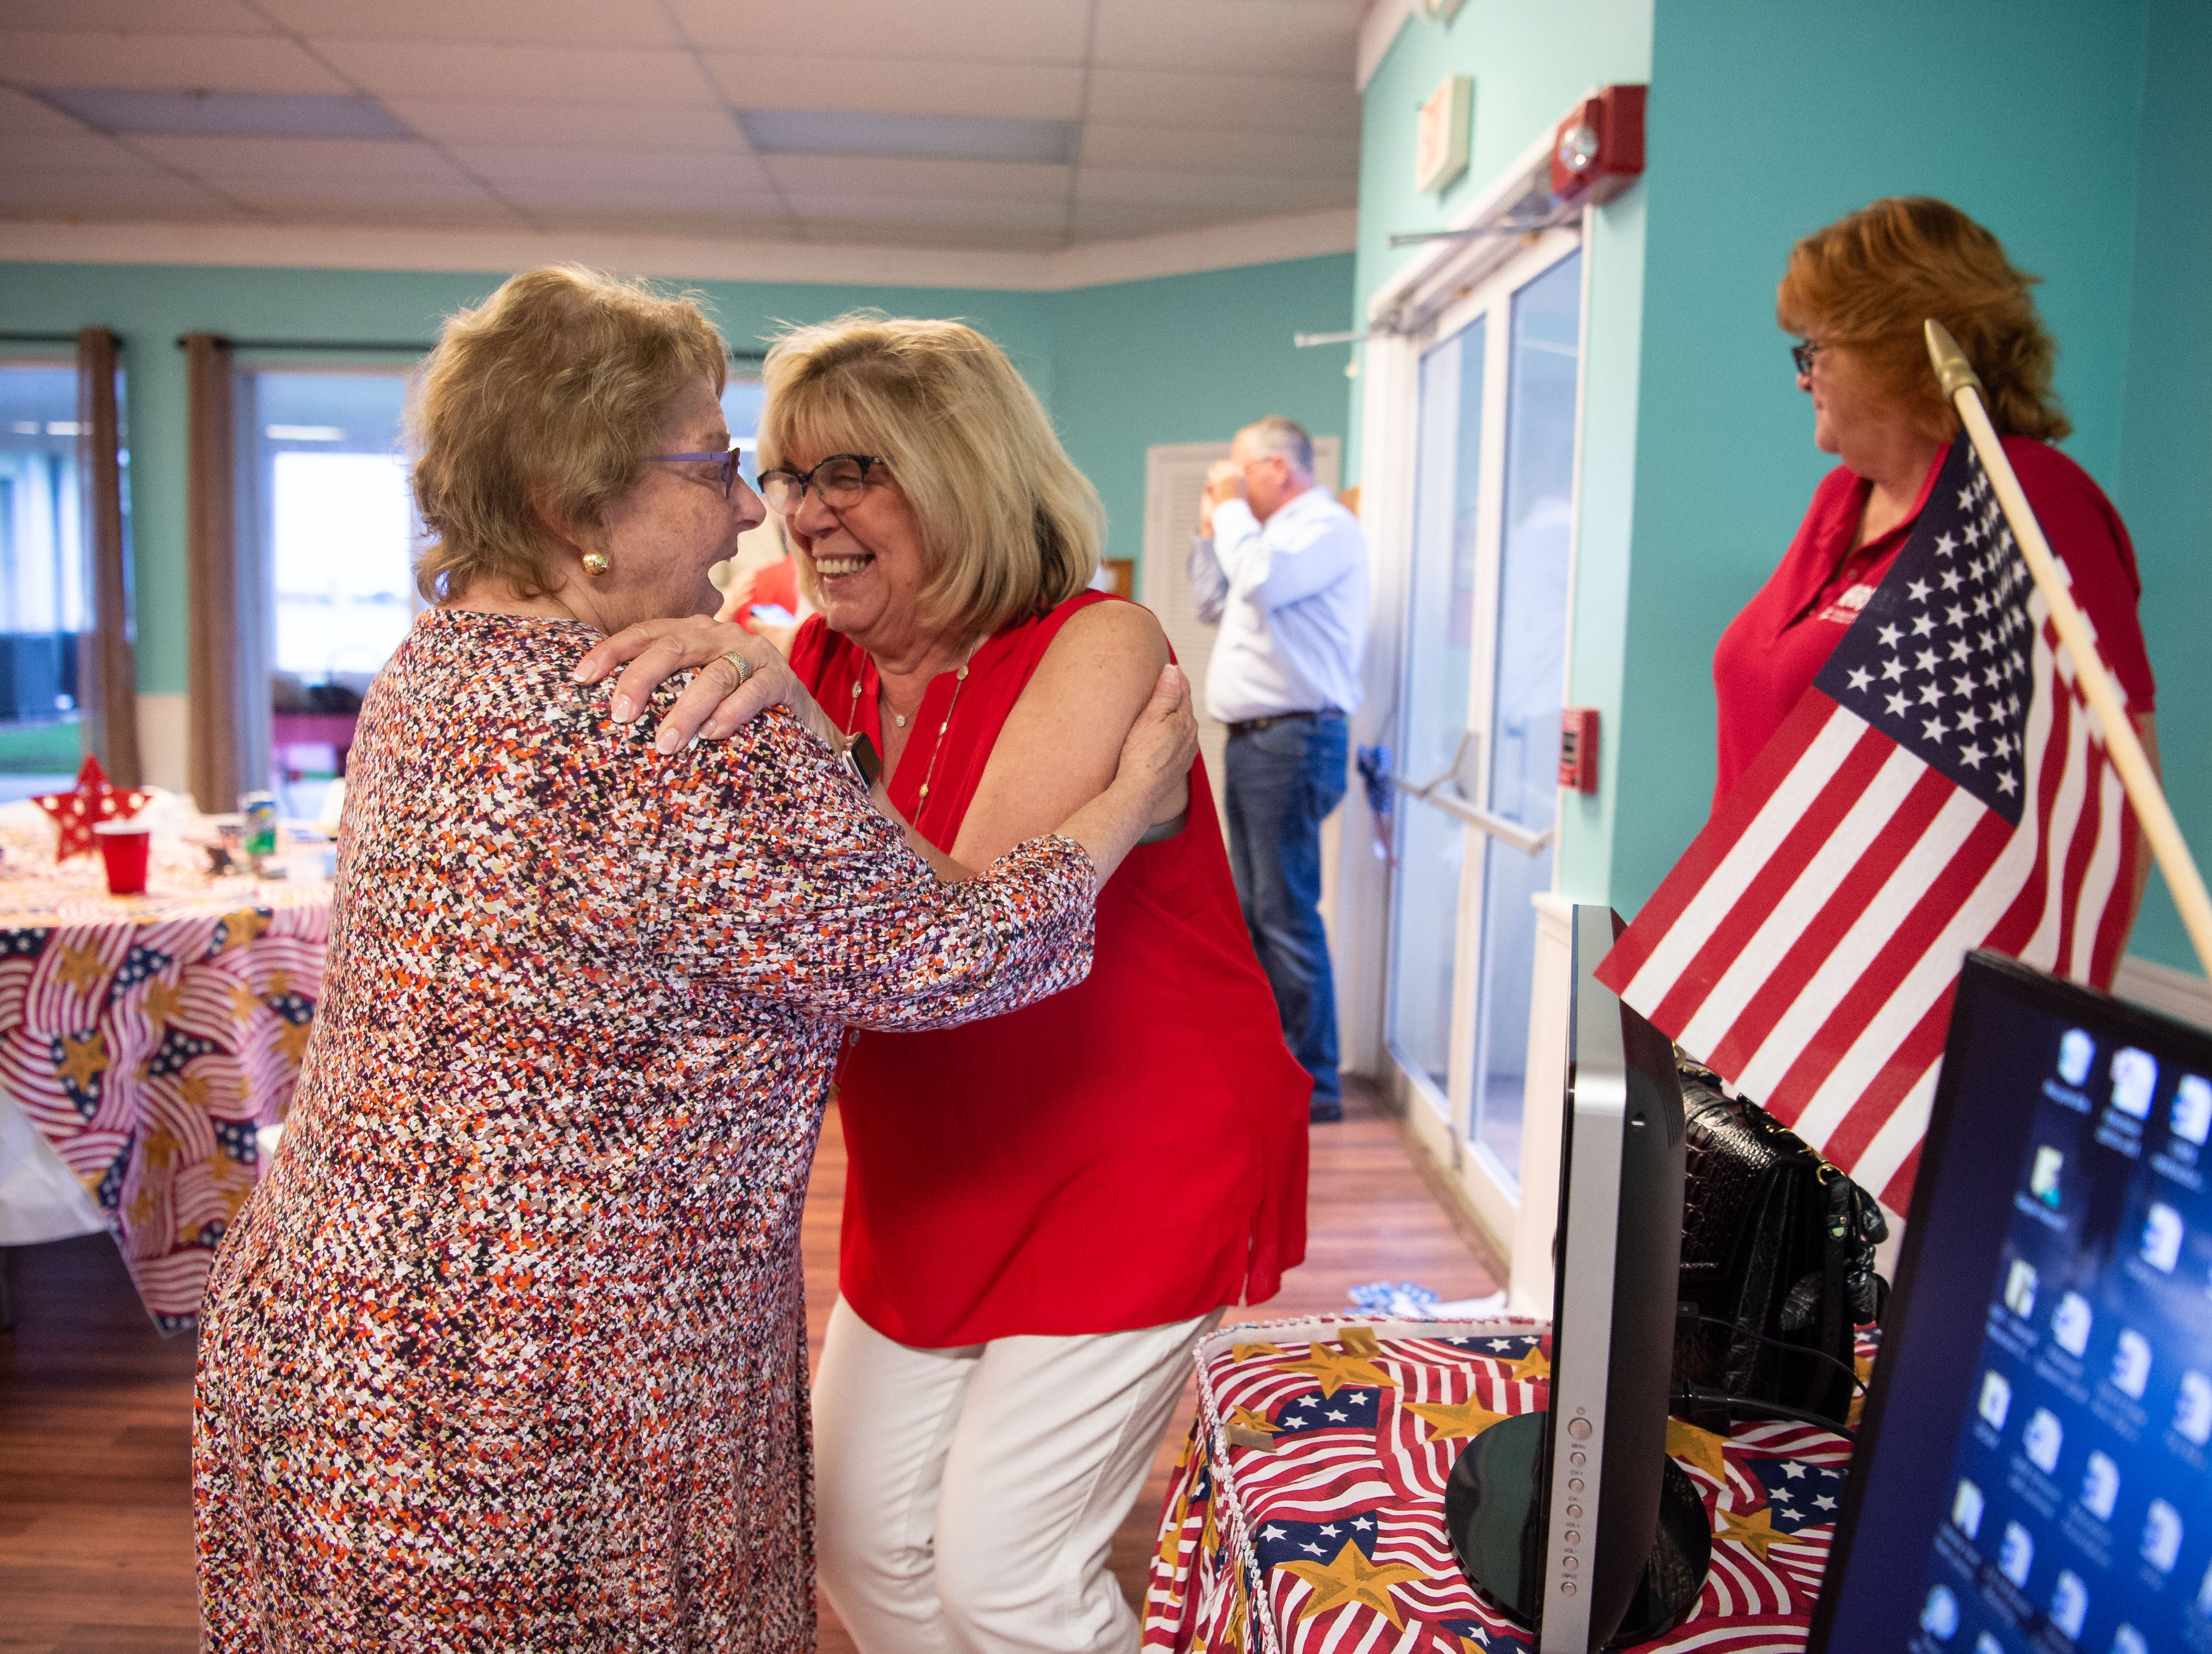 State Rep. Gayle Harrell and Keiser University administrator Belinda Keiser vie for the Republican nomination on Tuesday, Aug. 28, 2018, to run for the Senate Dist. 25 seat being vacated by Sen. Joe Negron. Supporters attend primary elections parties in downtown Stuart for Harrell at Flagler Place, and Keiser at Mulligan's Beach House Bar & Grill.